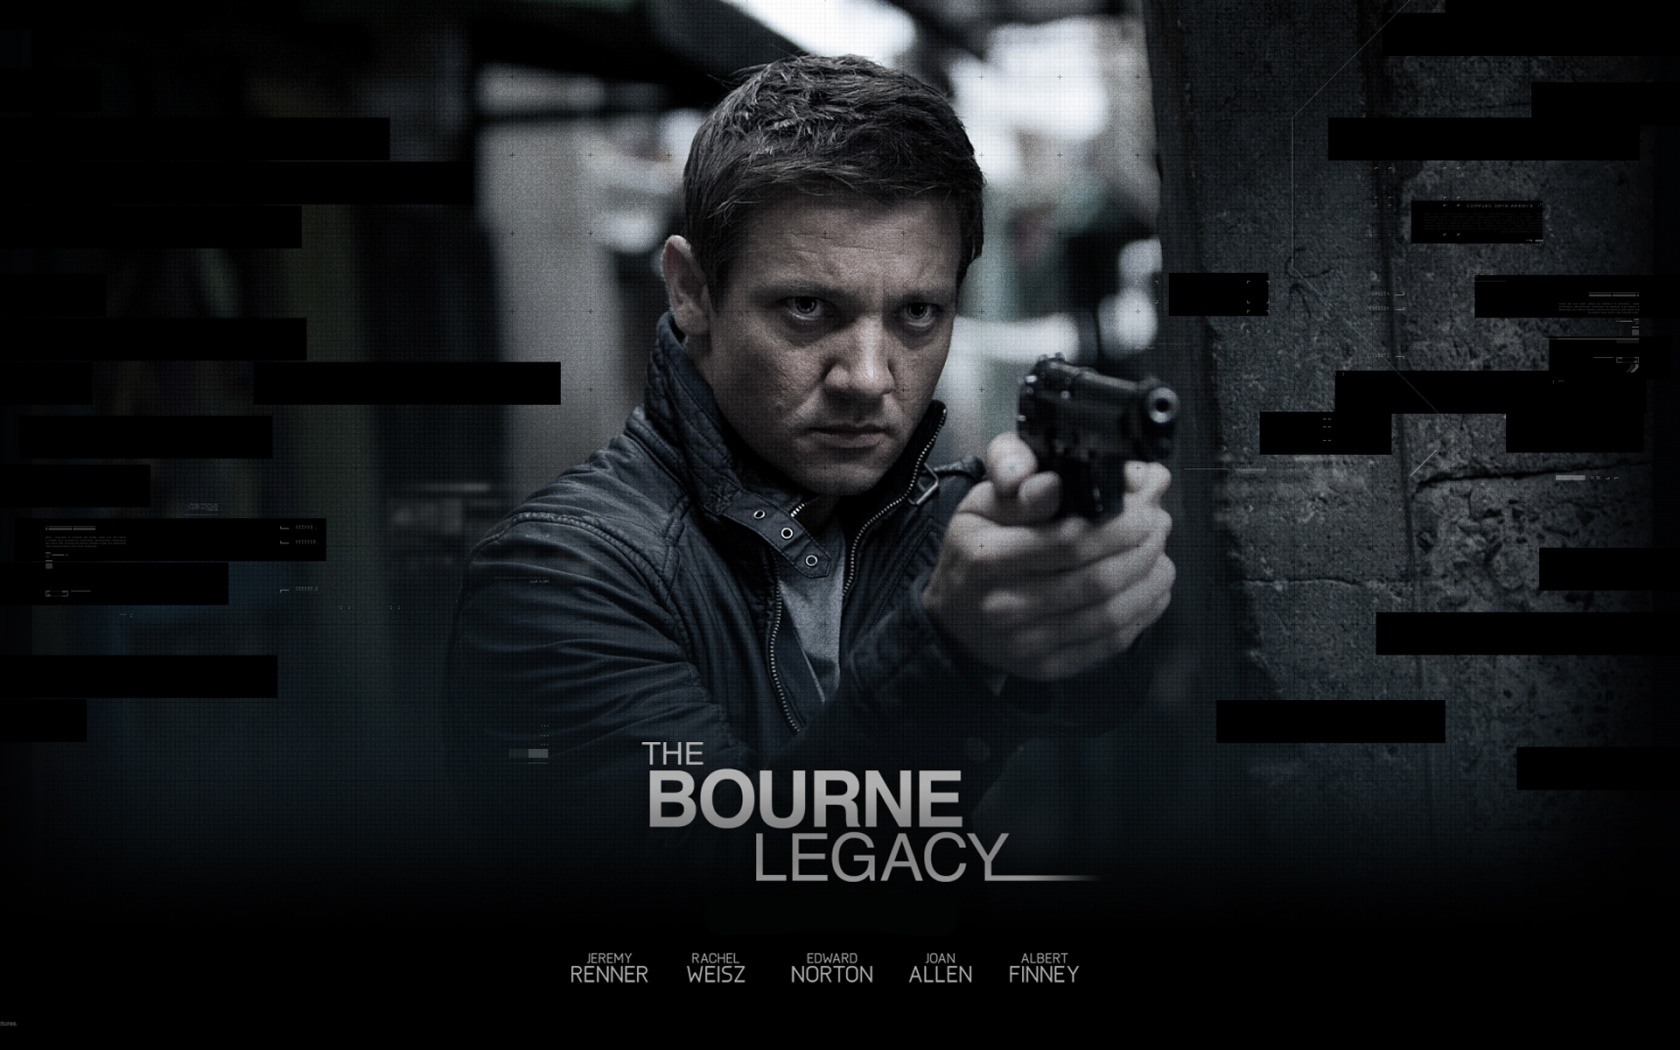 2012 The Bourne Legacy Movie #4162055, 1920x1200   All For Desktop